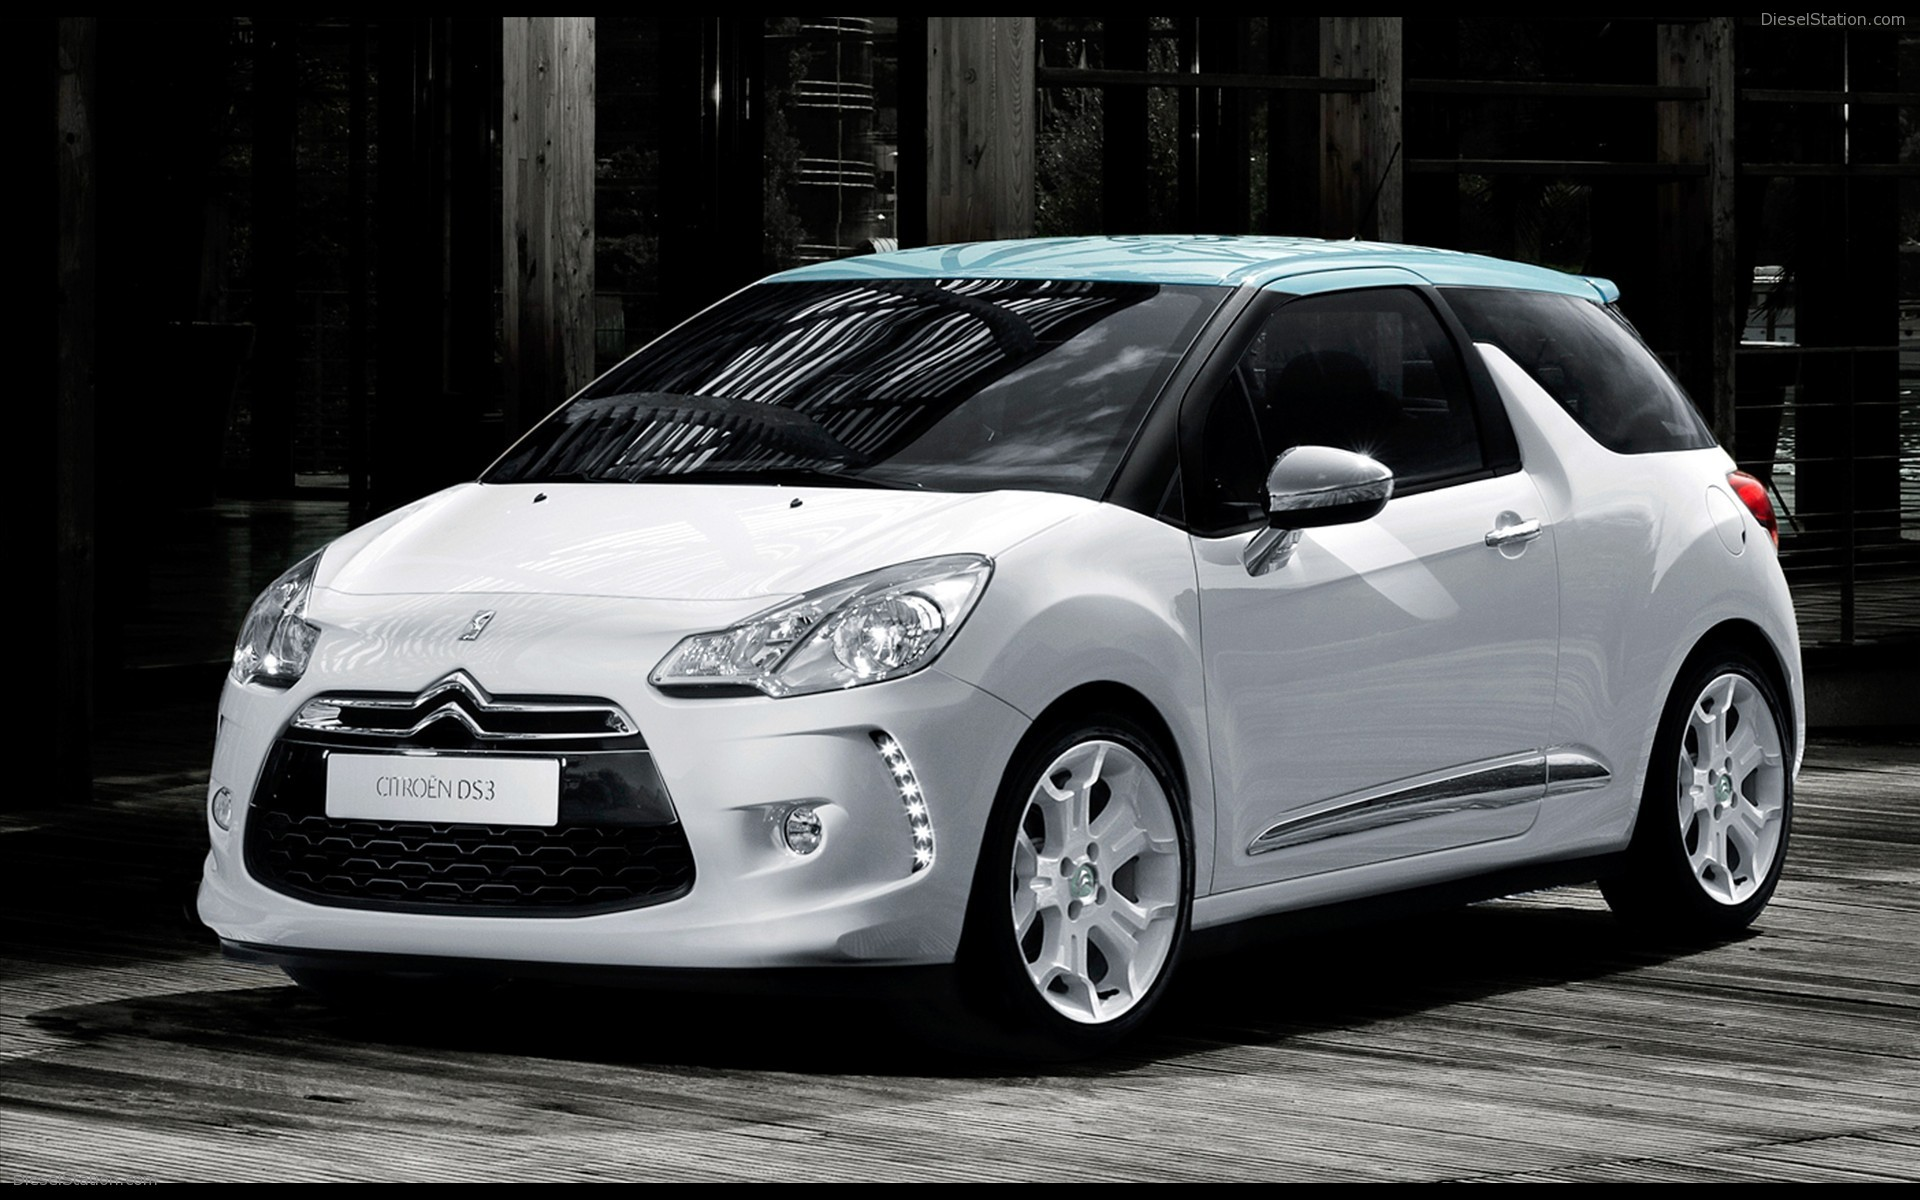 Citroen ds3 photo - 4